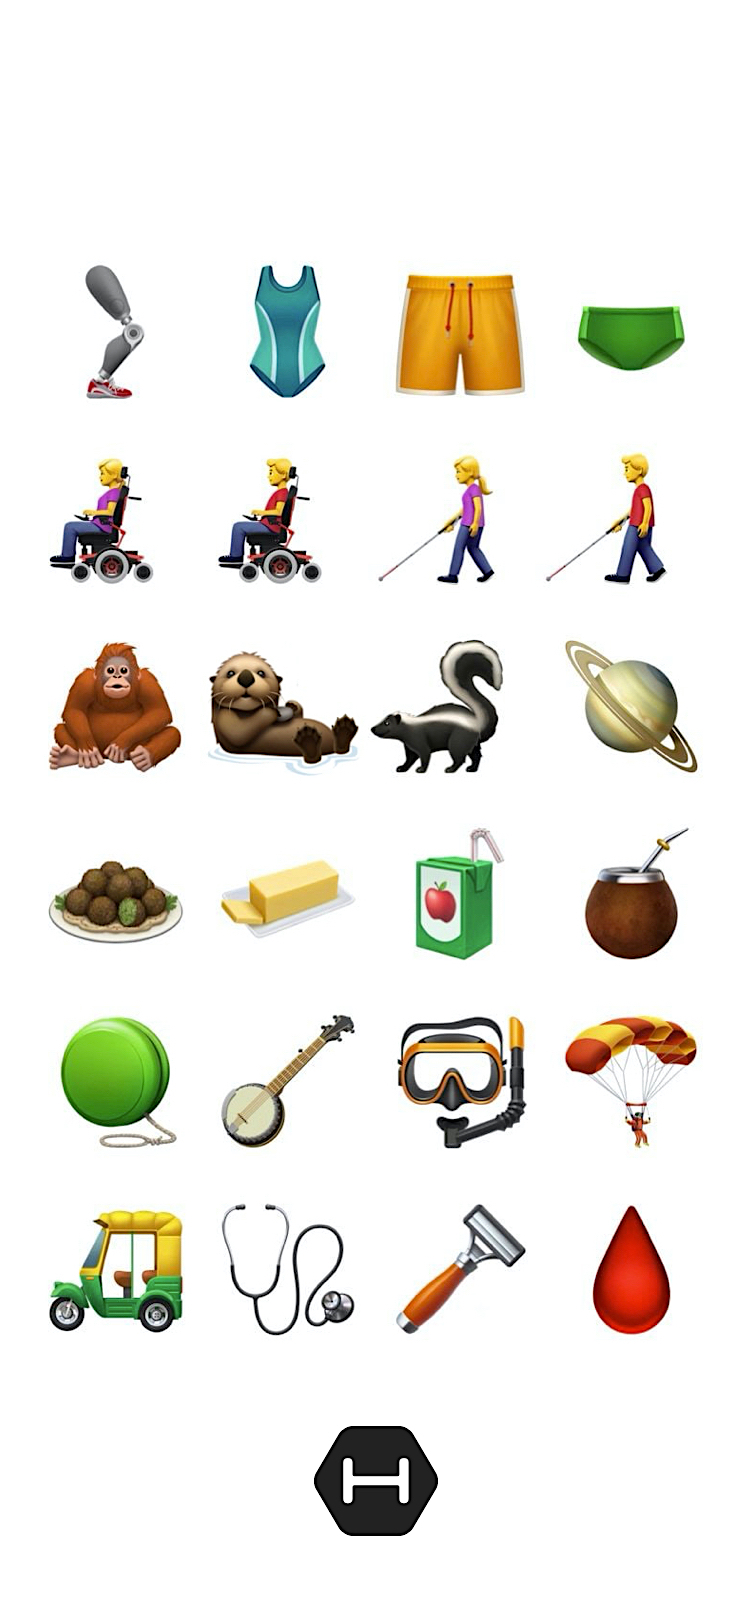 Download Emoji iOS 13.2 for iOS 12 1.0